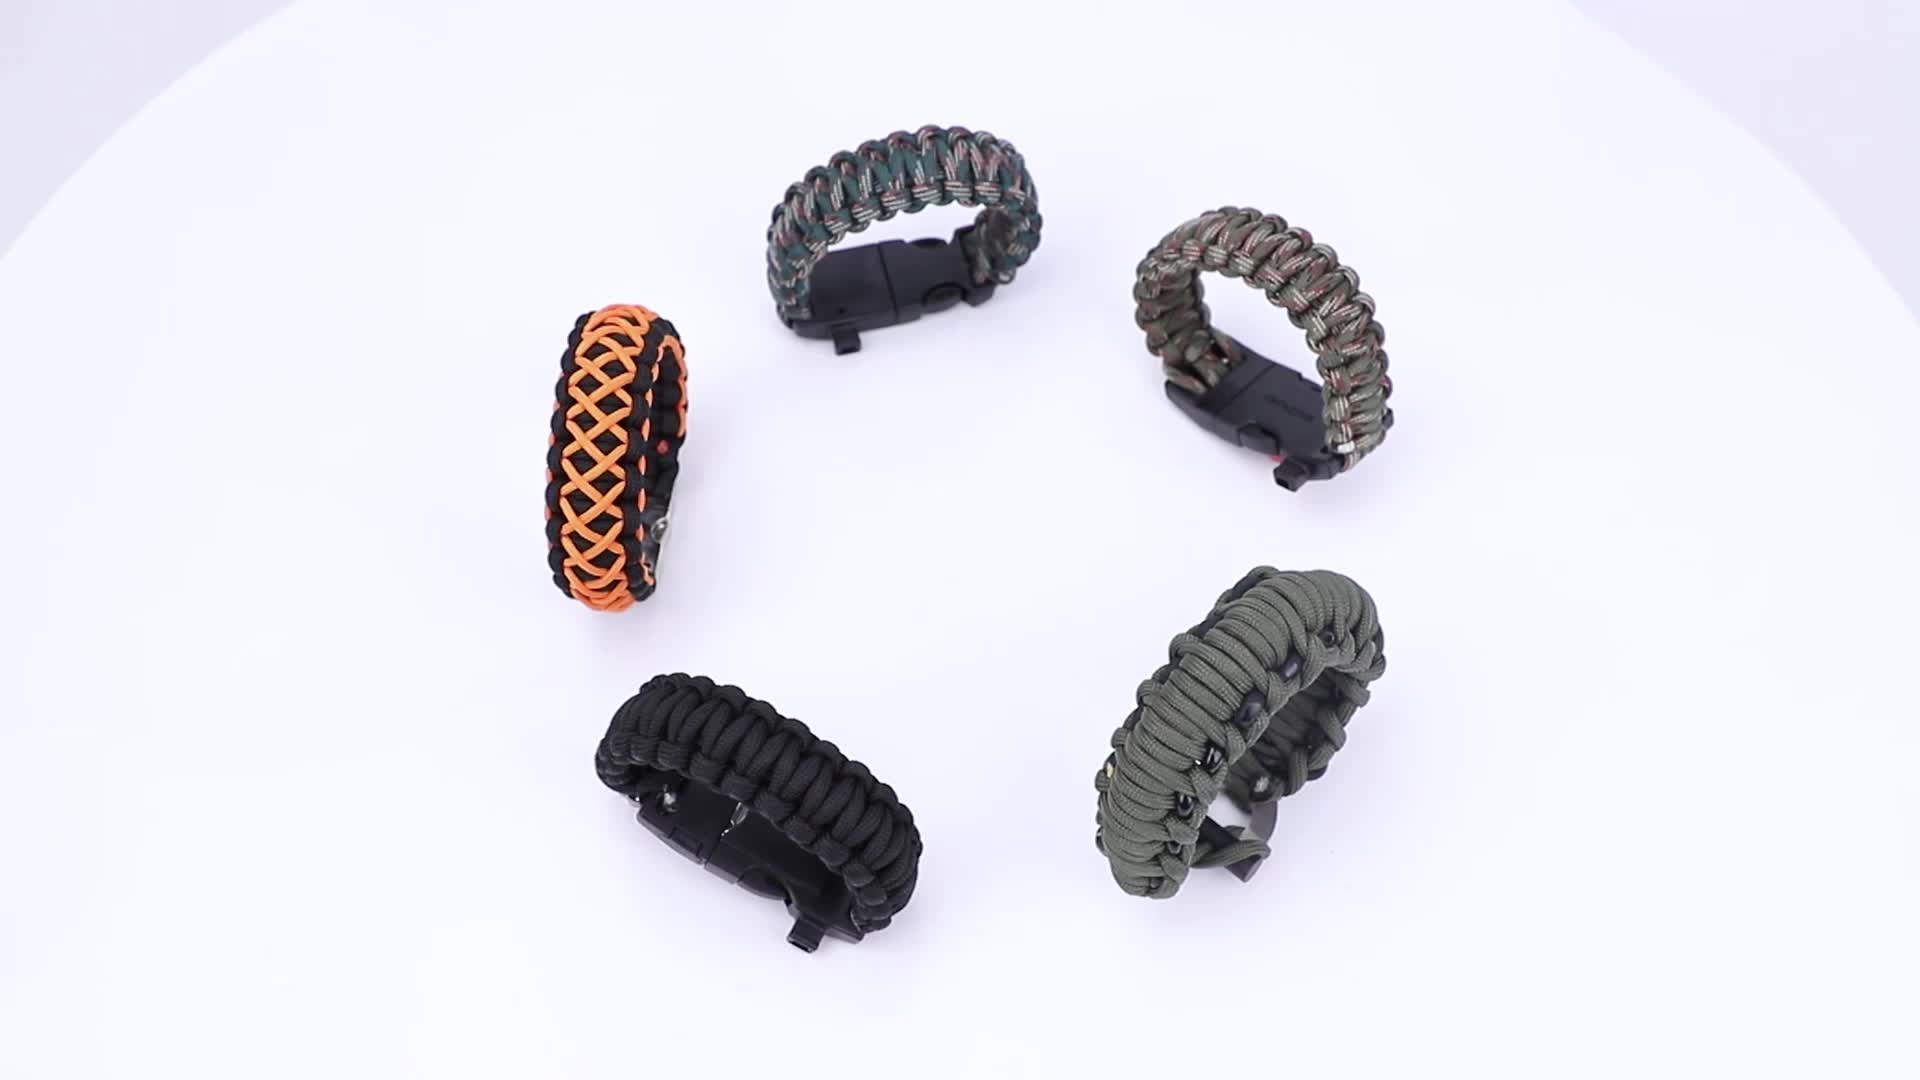 Promotionele Gratis Monsters Survival Paracord Armbanden Voor Outdoor Camping